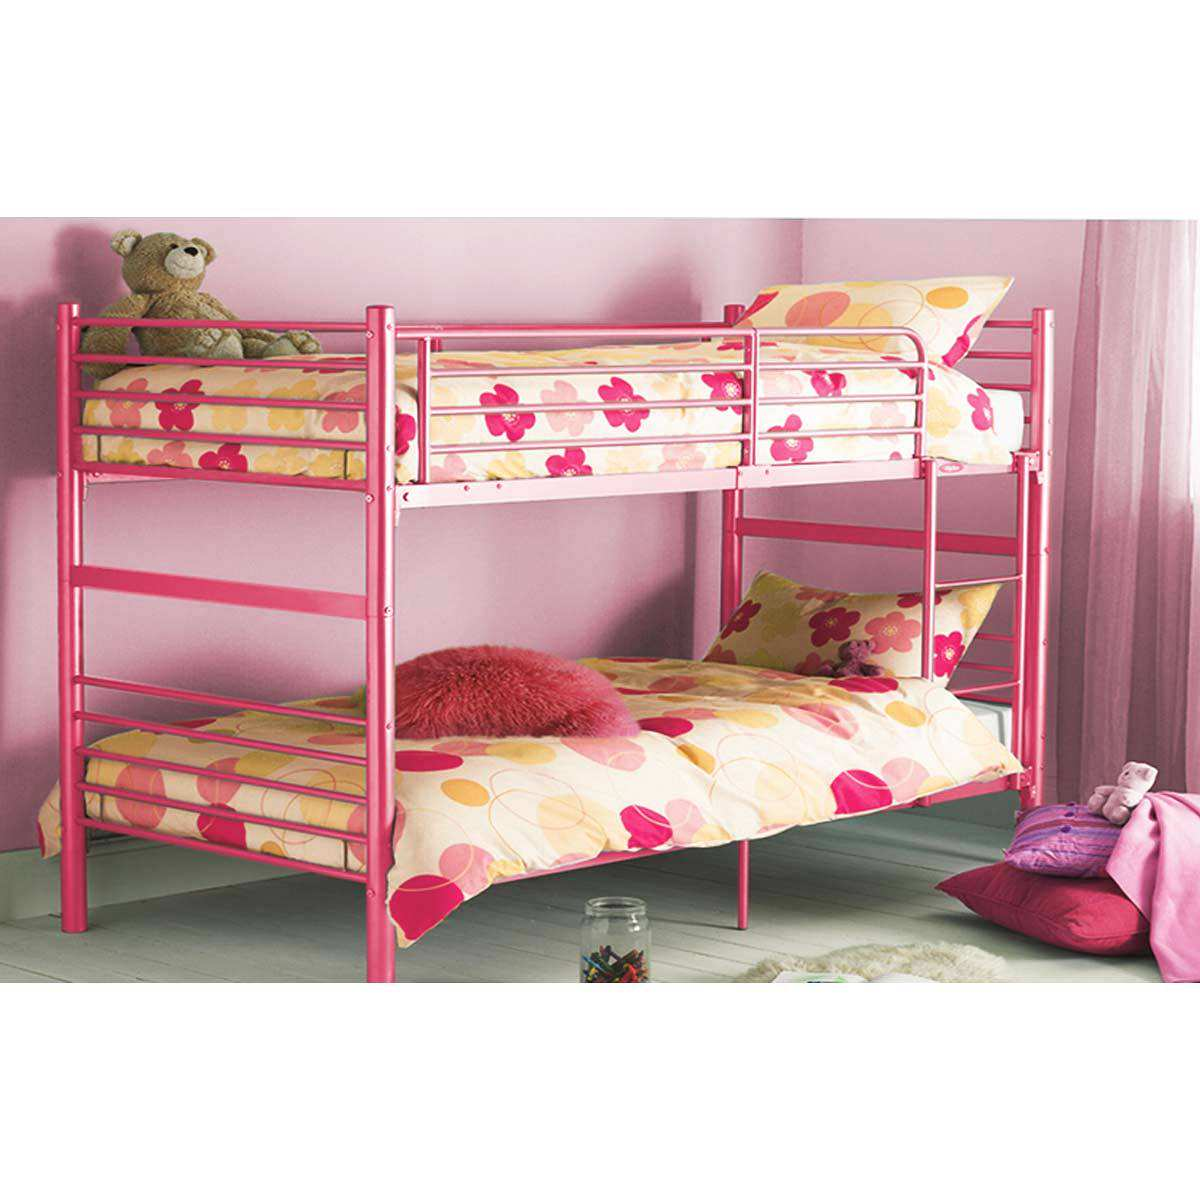 Ideal design concepts for loft beds for girls small room for Images of beds for bedroom